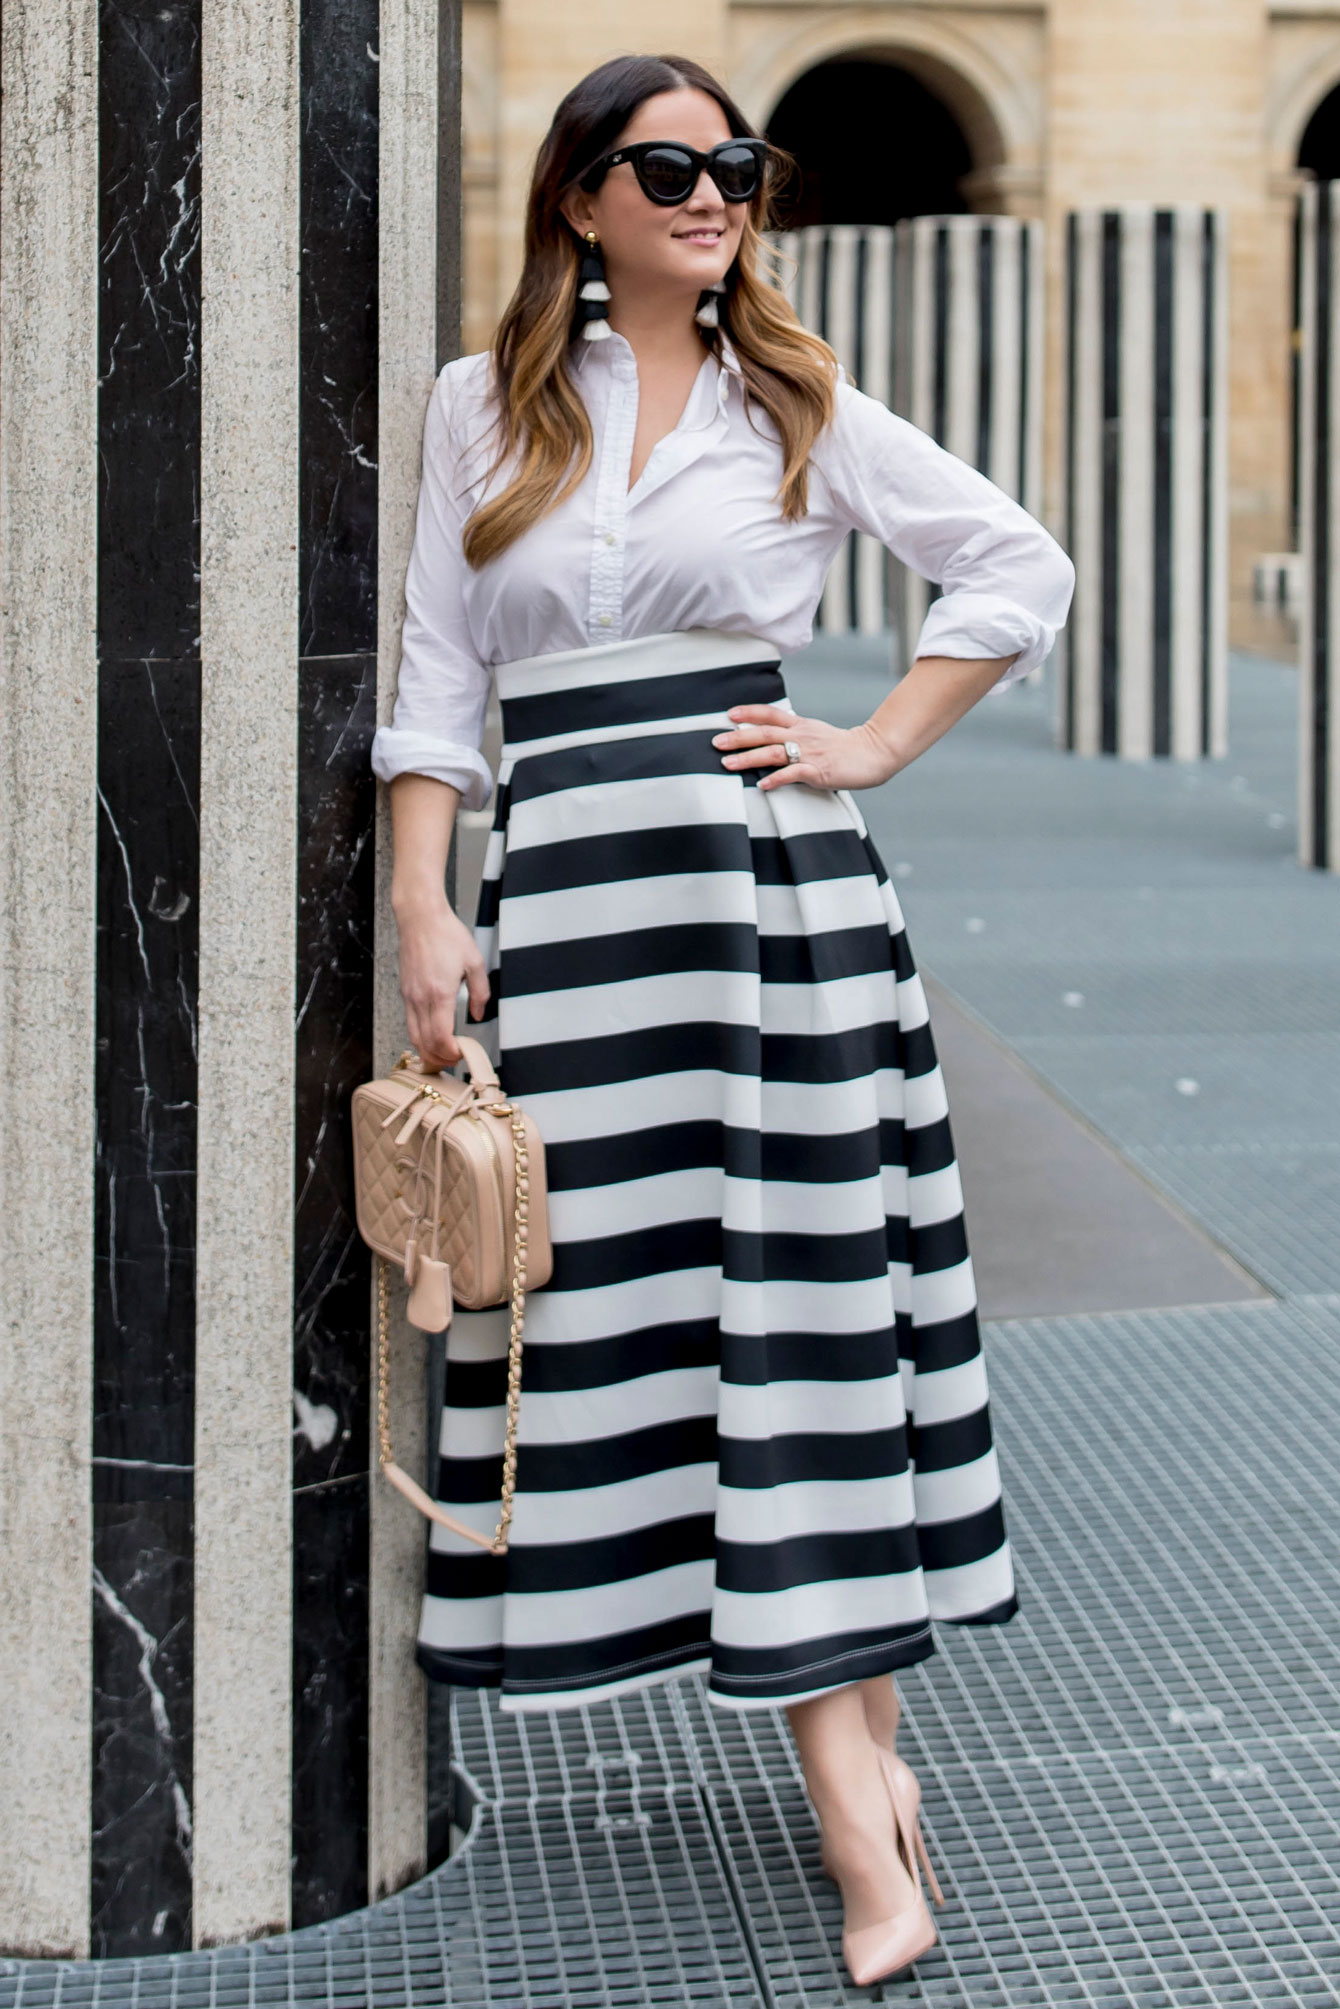 ASOS Black White Stripe Midi Skirt